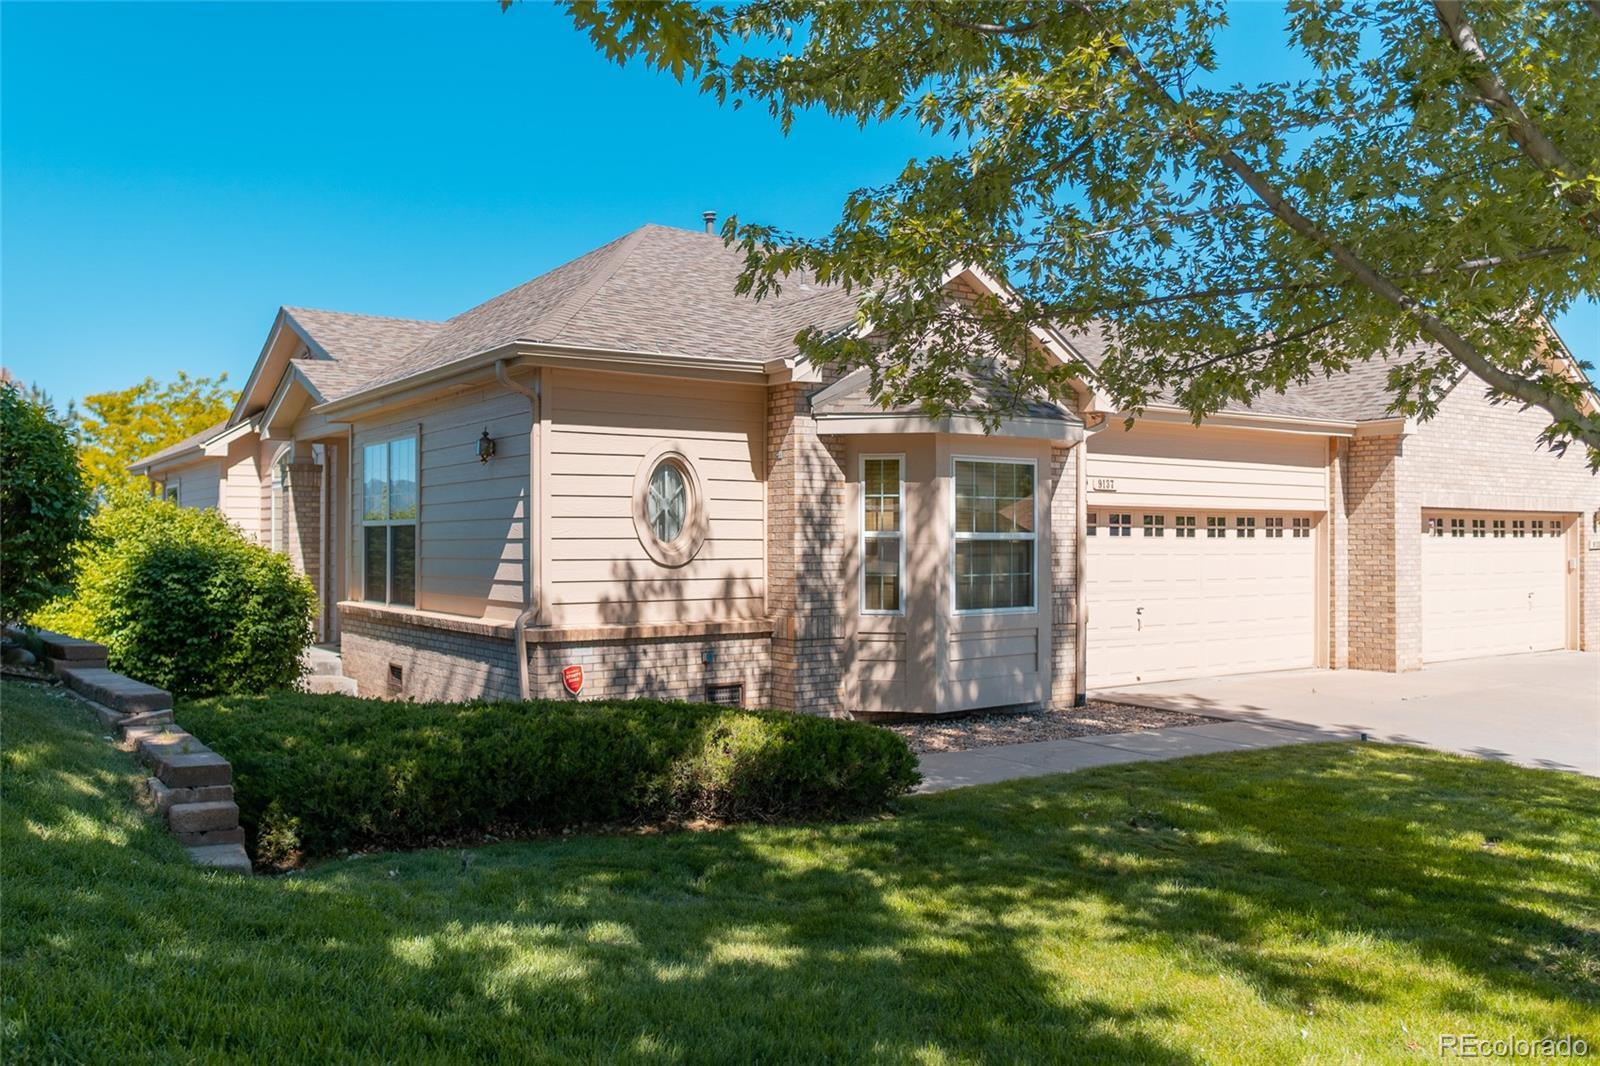 MLS# 4859119 - 6 - 9137 Woodland Drive, Highlands Ranch, CO 80126